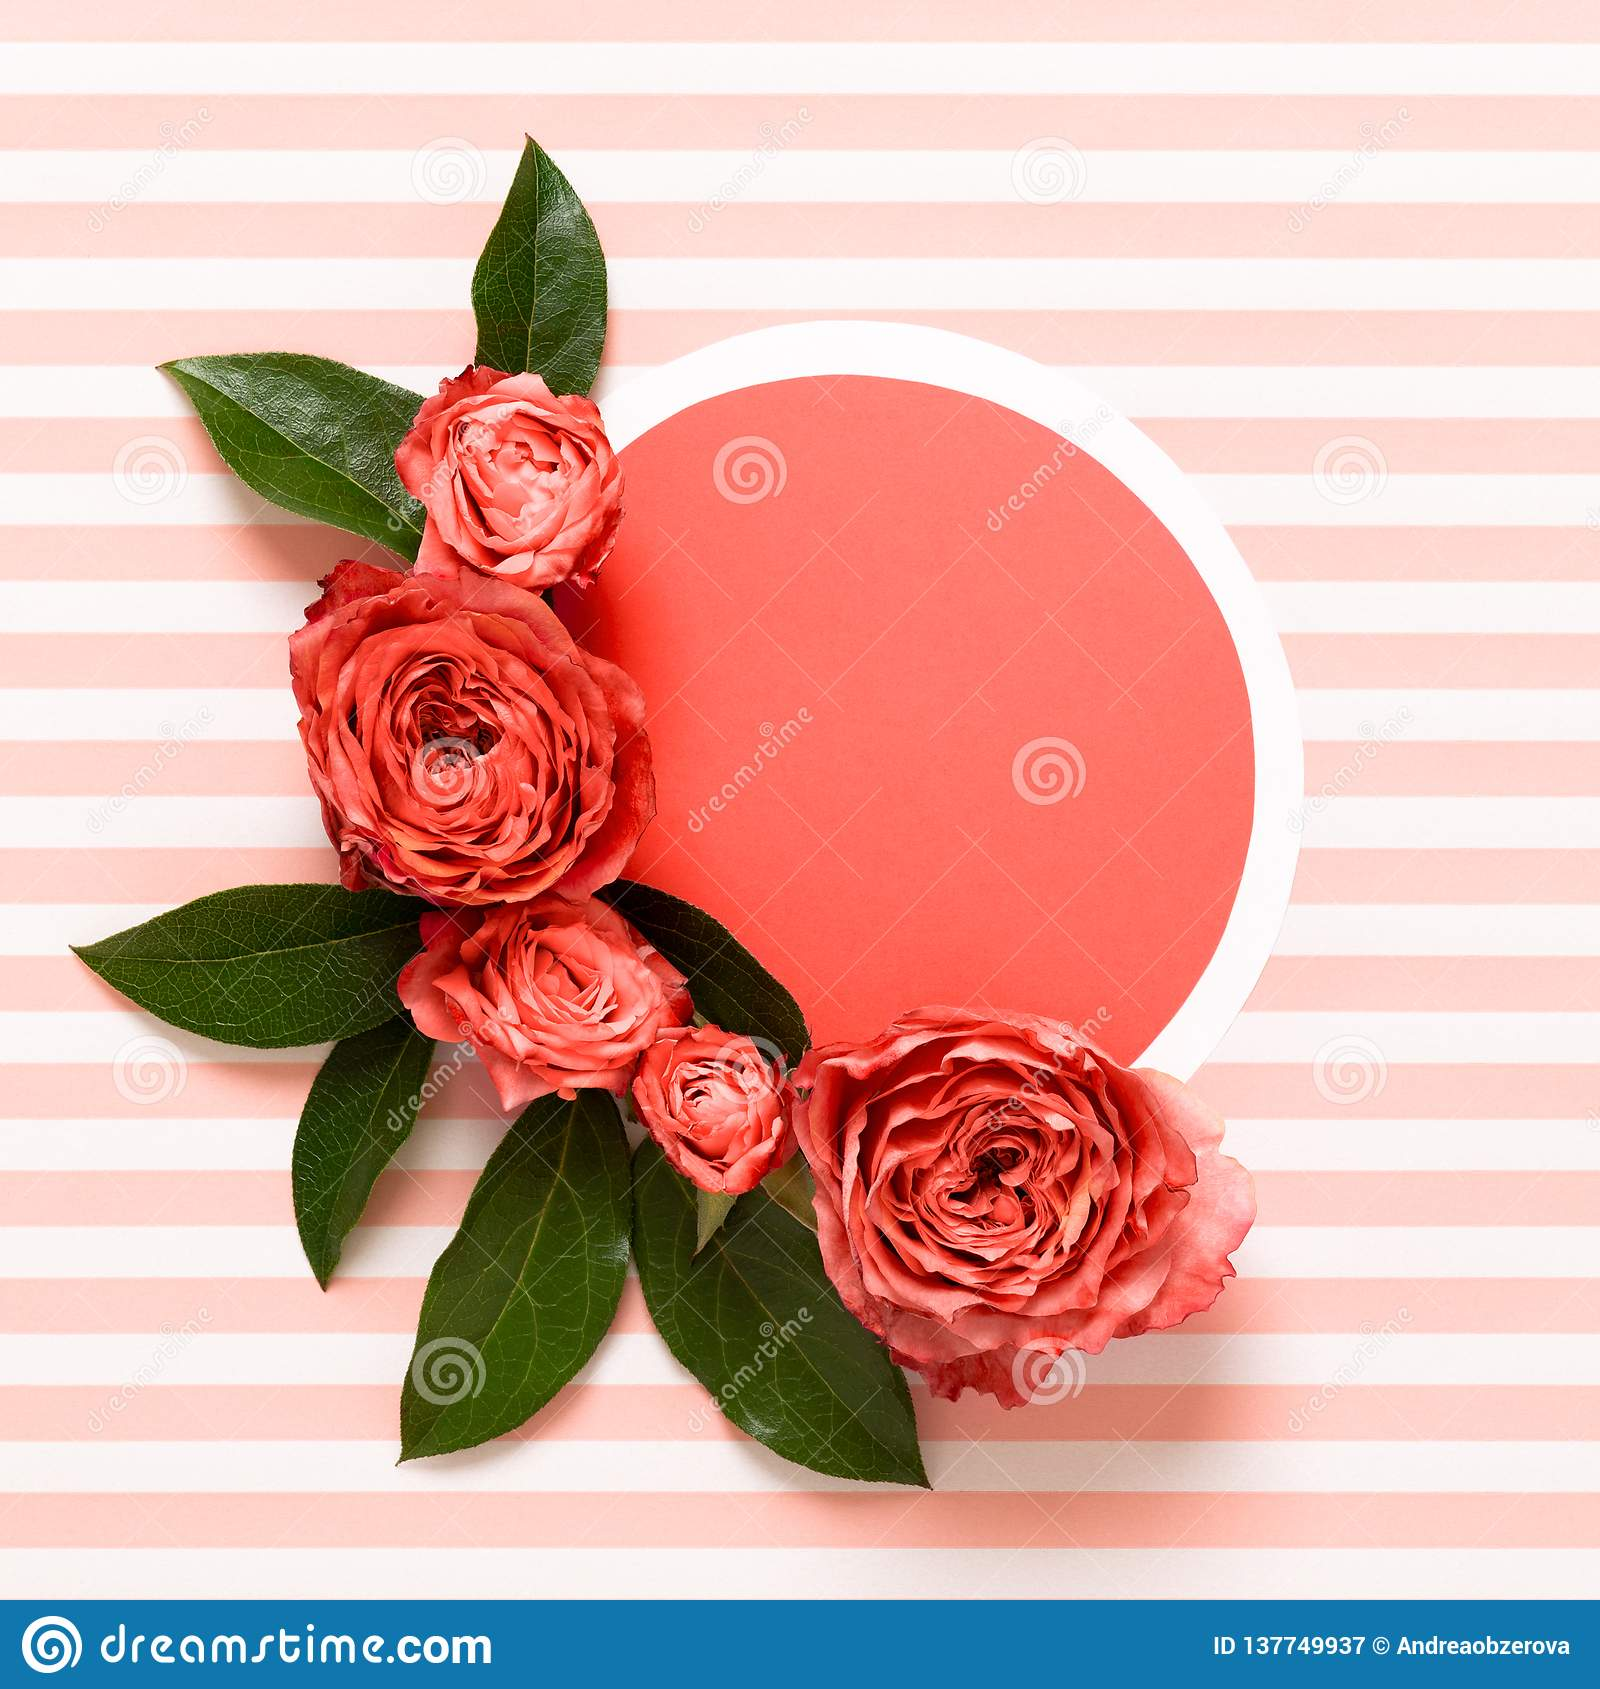 Happy Mothers Day, Womens Day, Valentines Day or Birthday Living Coral Pantone Color Background. Coral flat lay greeting card.